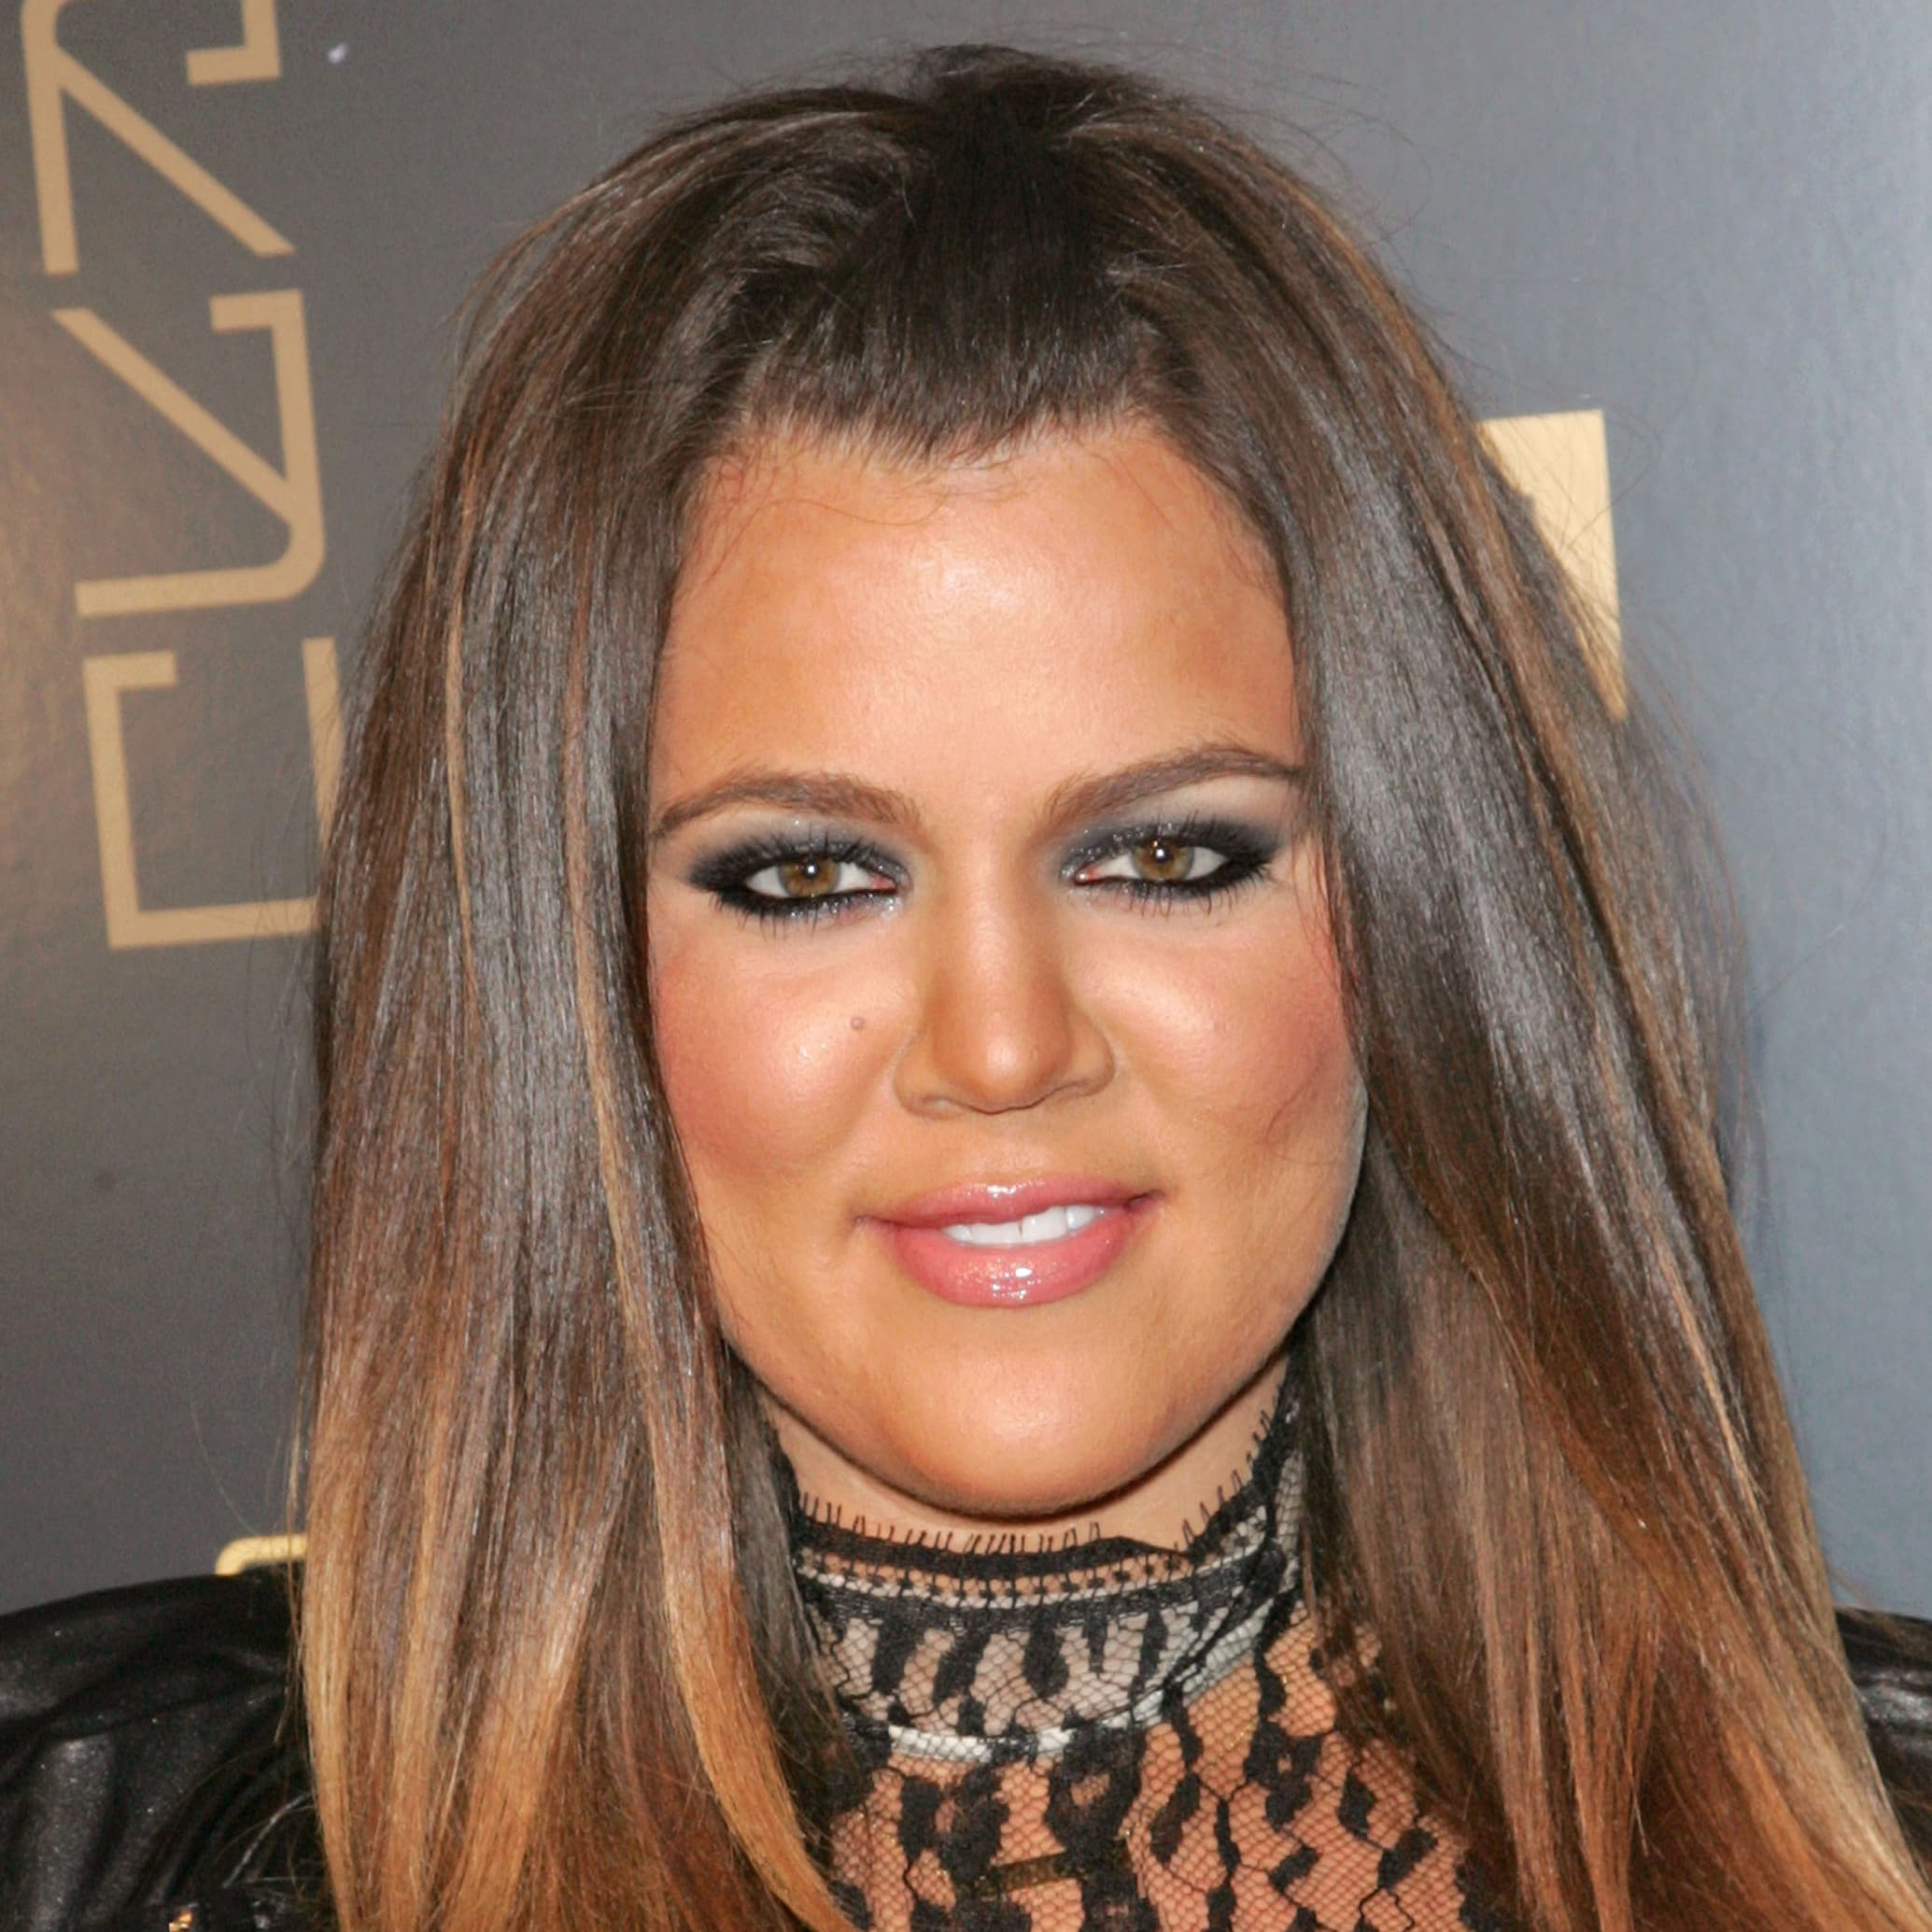 Kardashians Plastic Surgery Before And After photo - 1